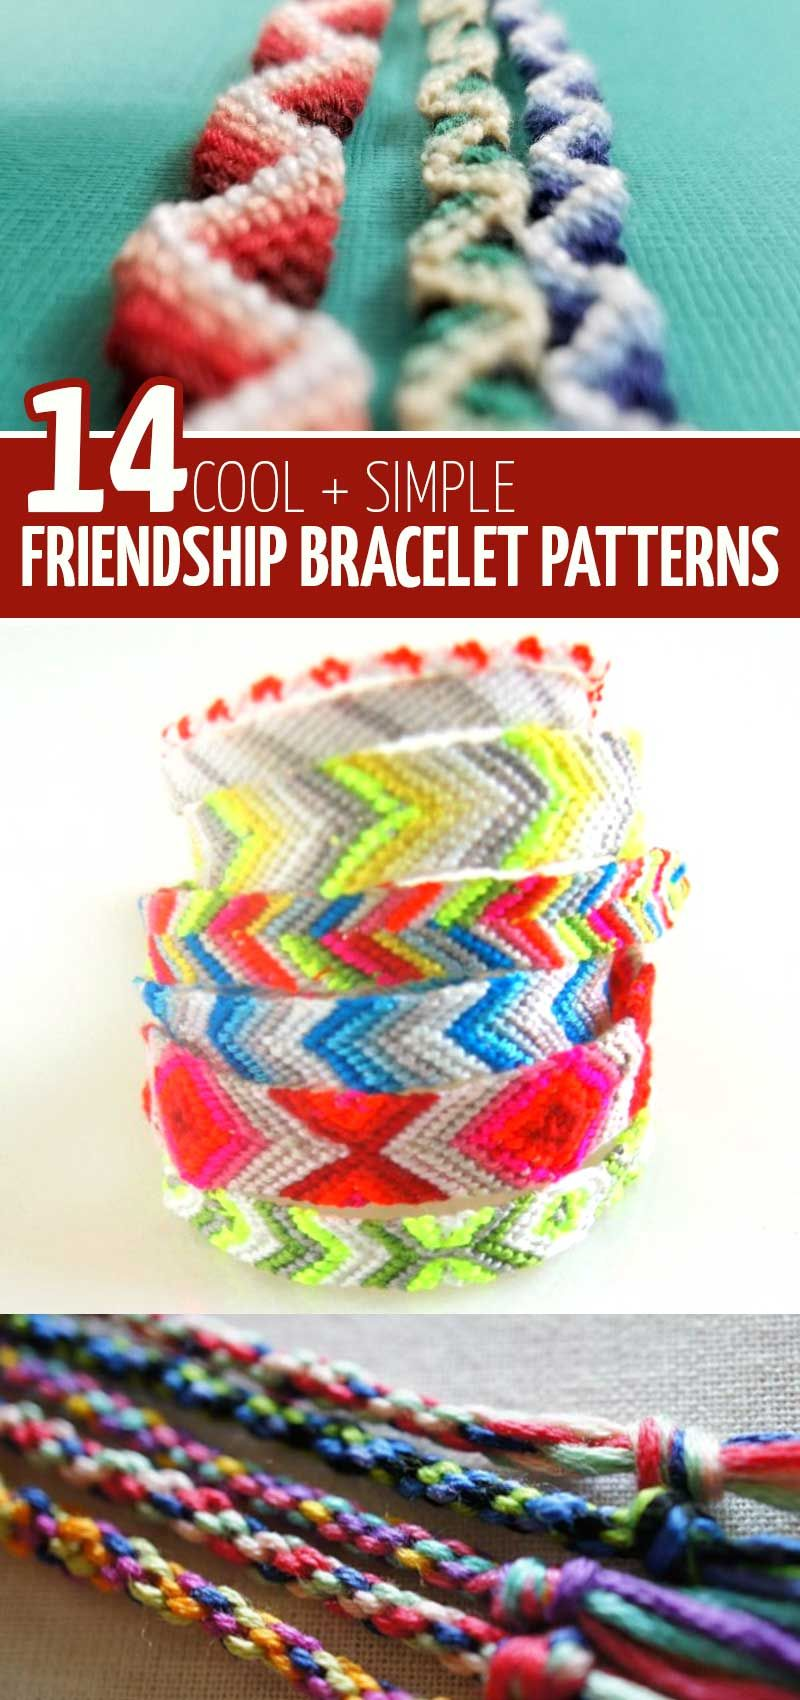 DIY Friendship Bracelet Tutorials and Patterns * Moms and Crafters